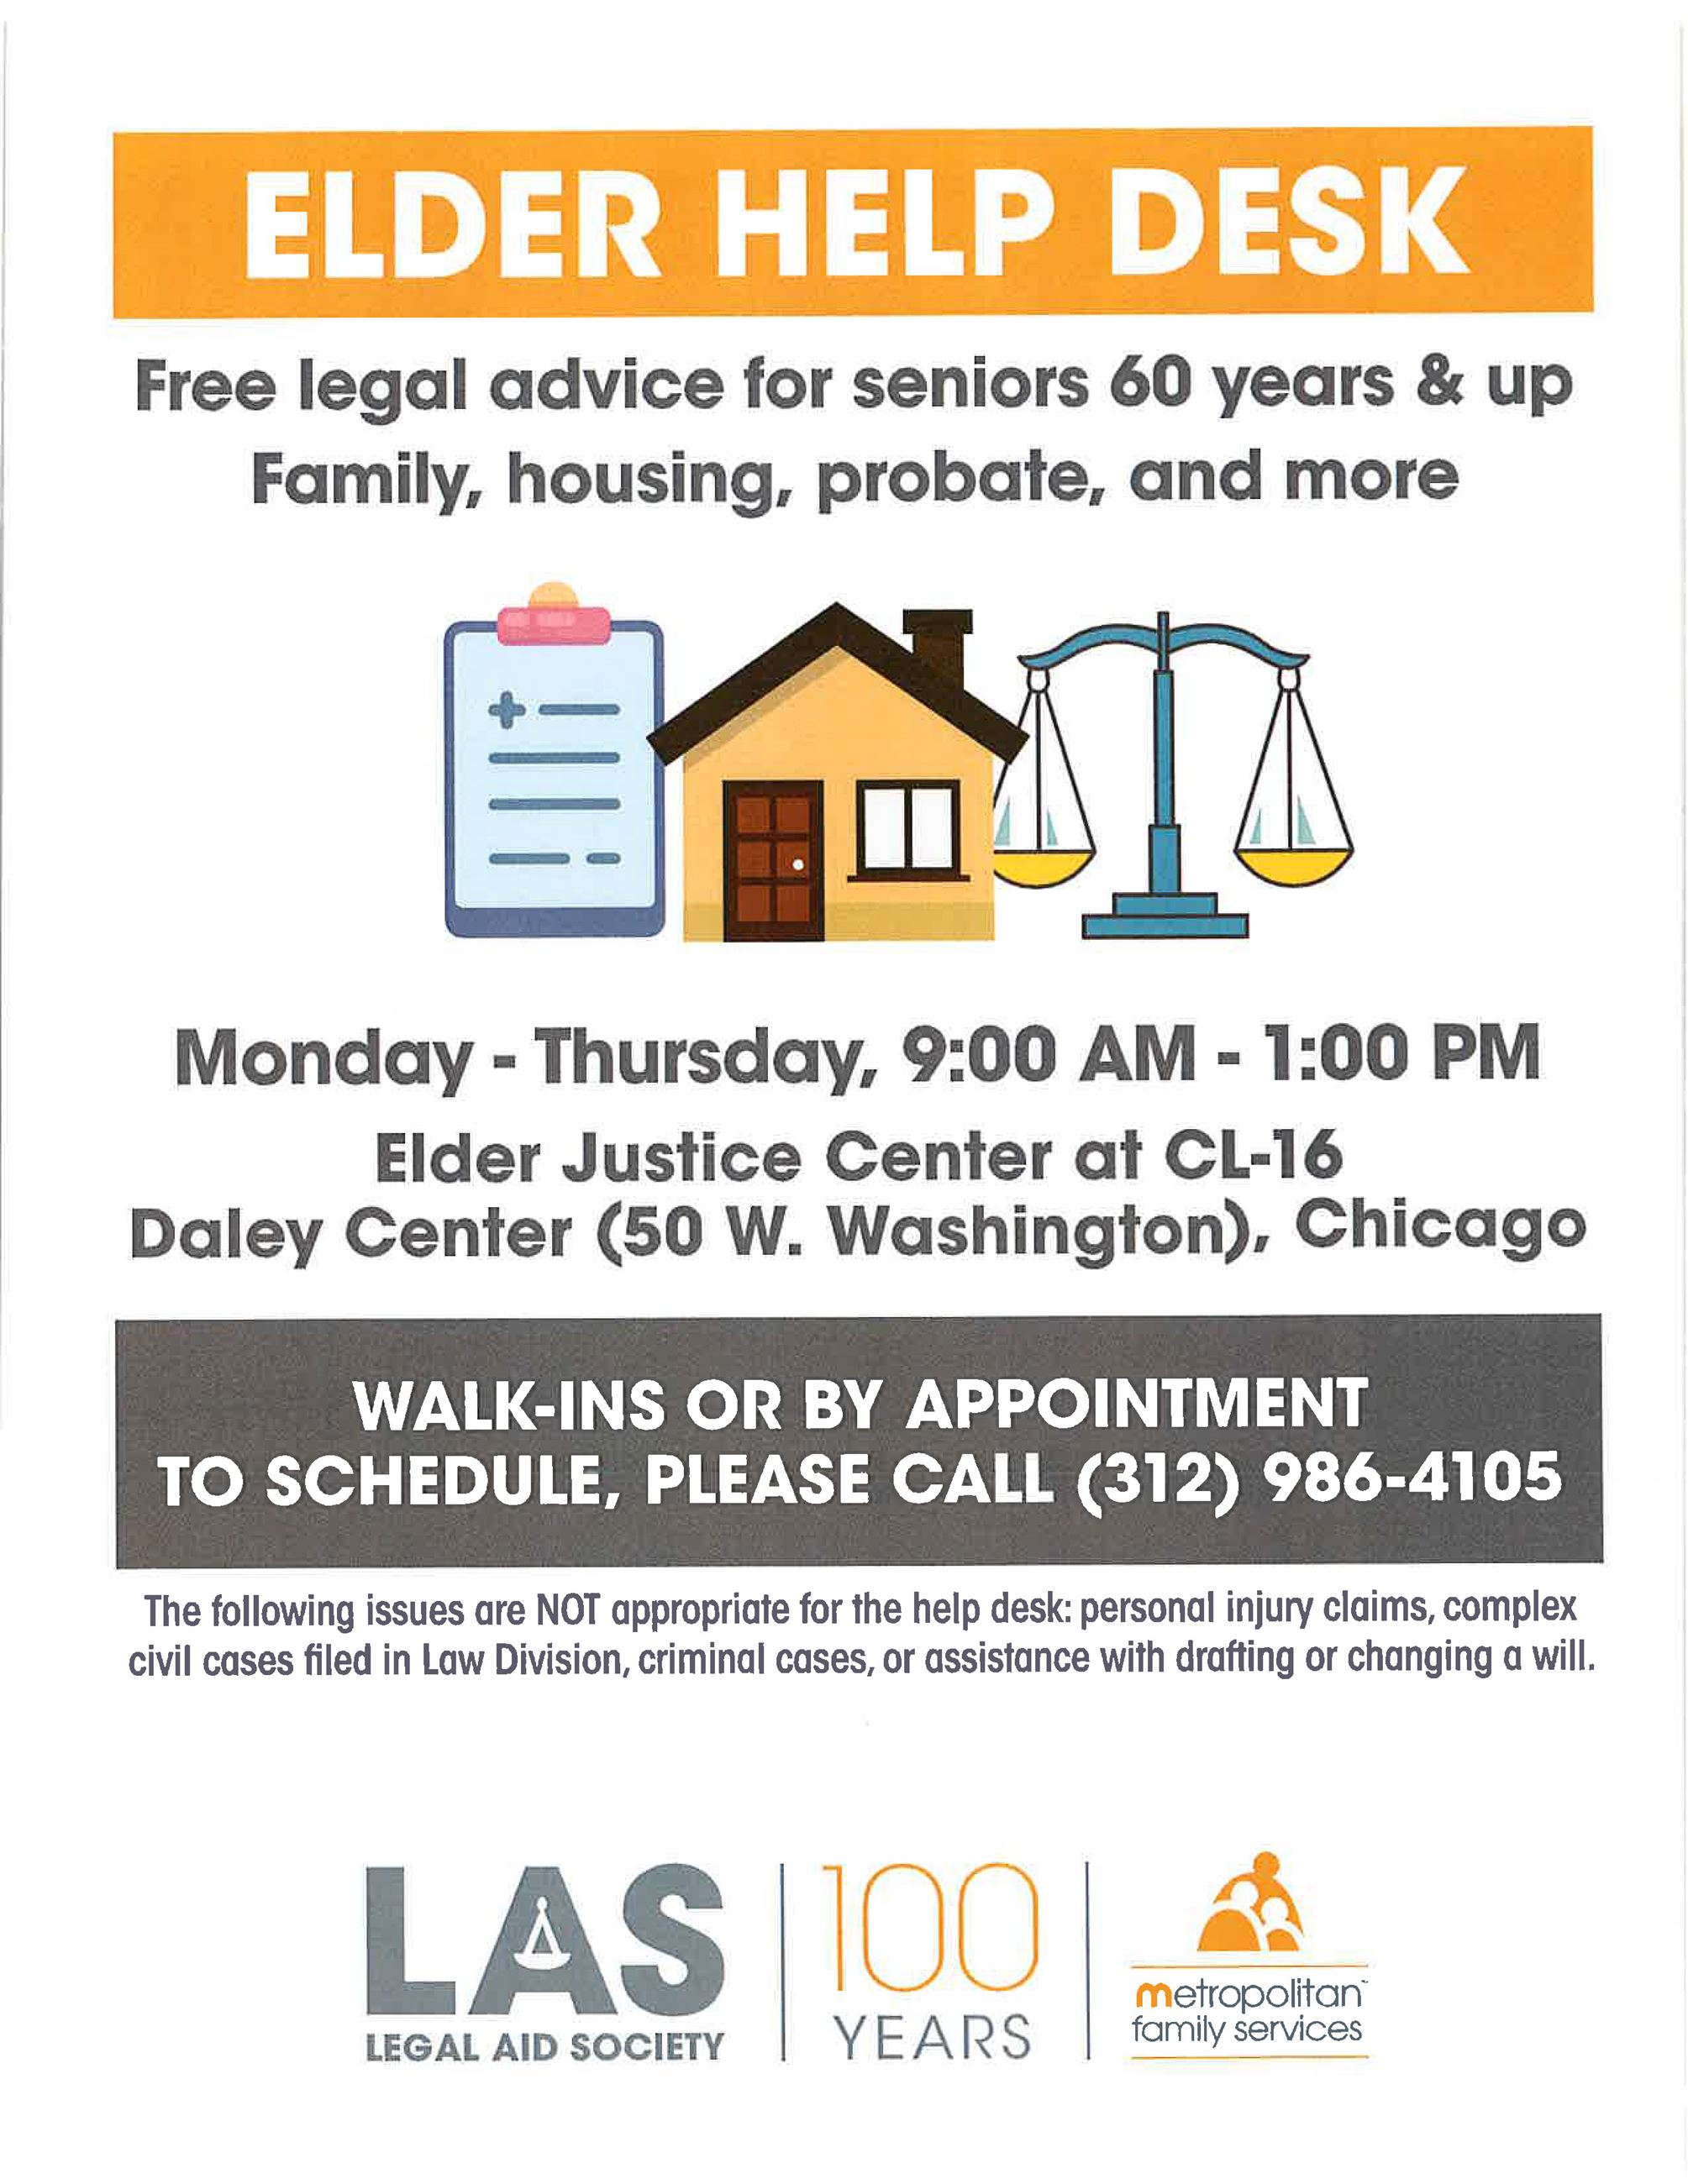 2020 Metropolitan Family Services - Legal Aid Society - Elder Help Desk